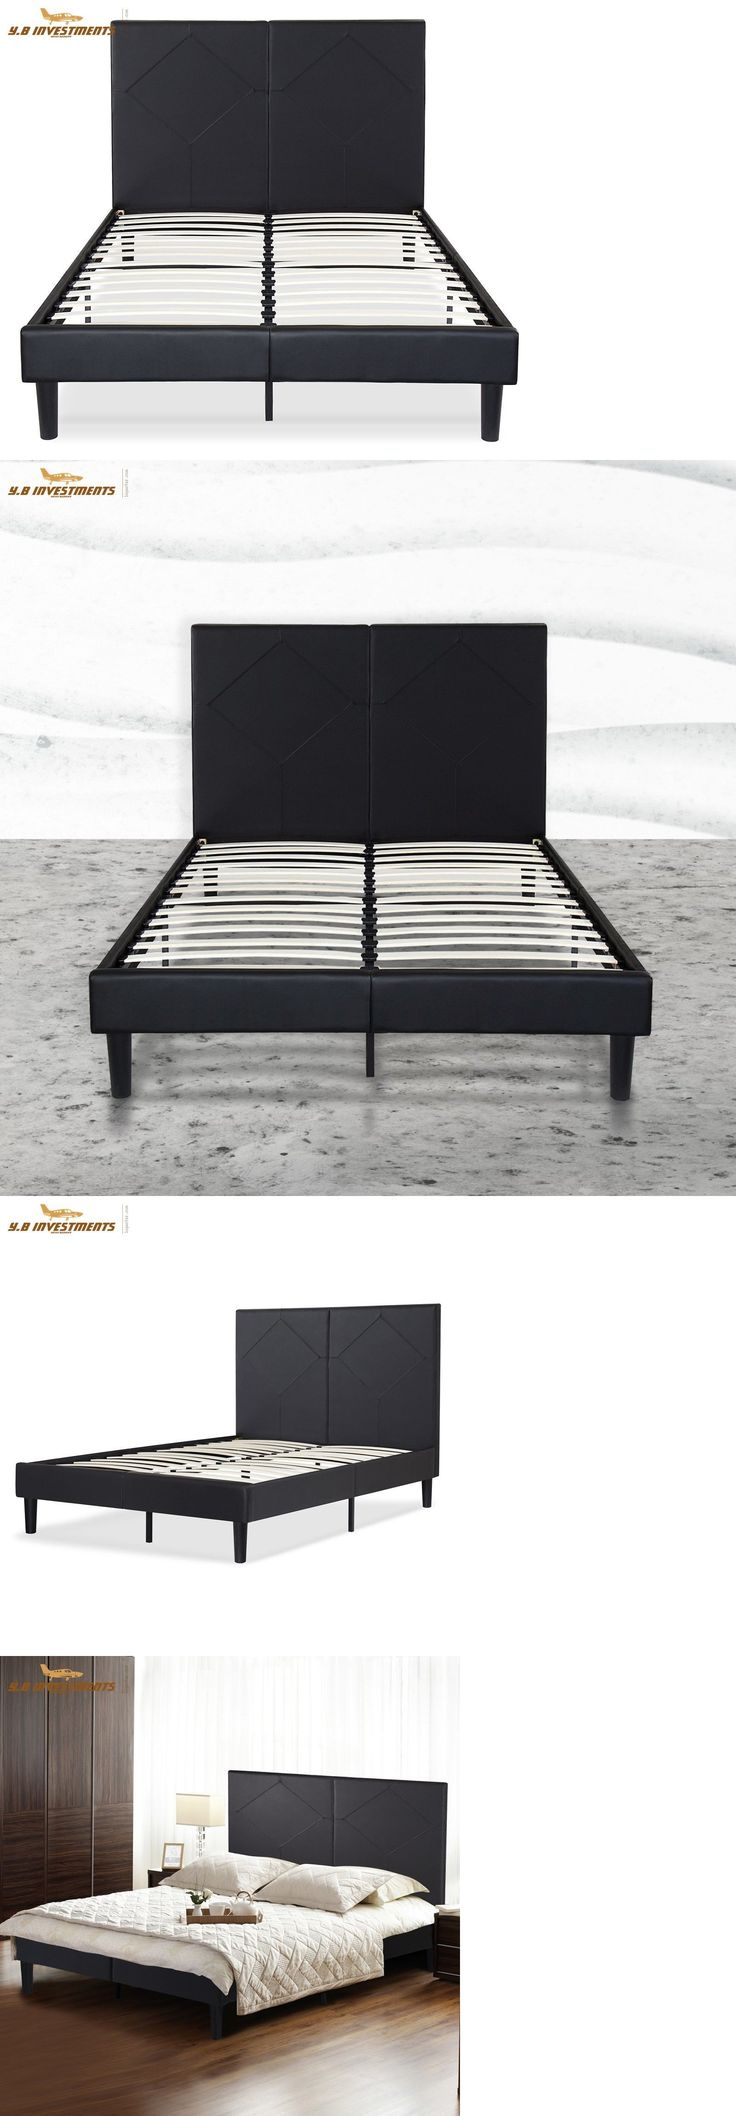 best  modern wood bed ideas only on pinterest  timber bed  - beds and bed frames  modern wood black queen size bed frame platformwith headboard